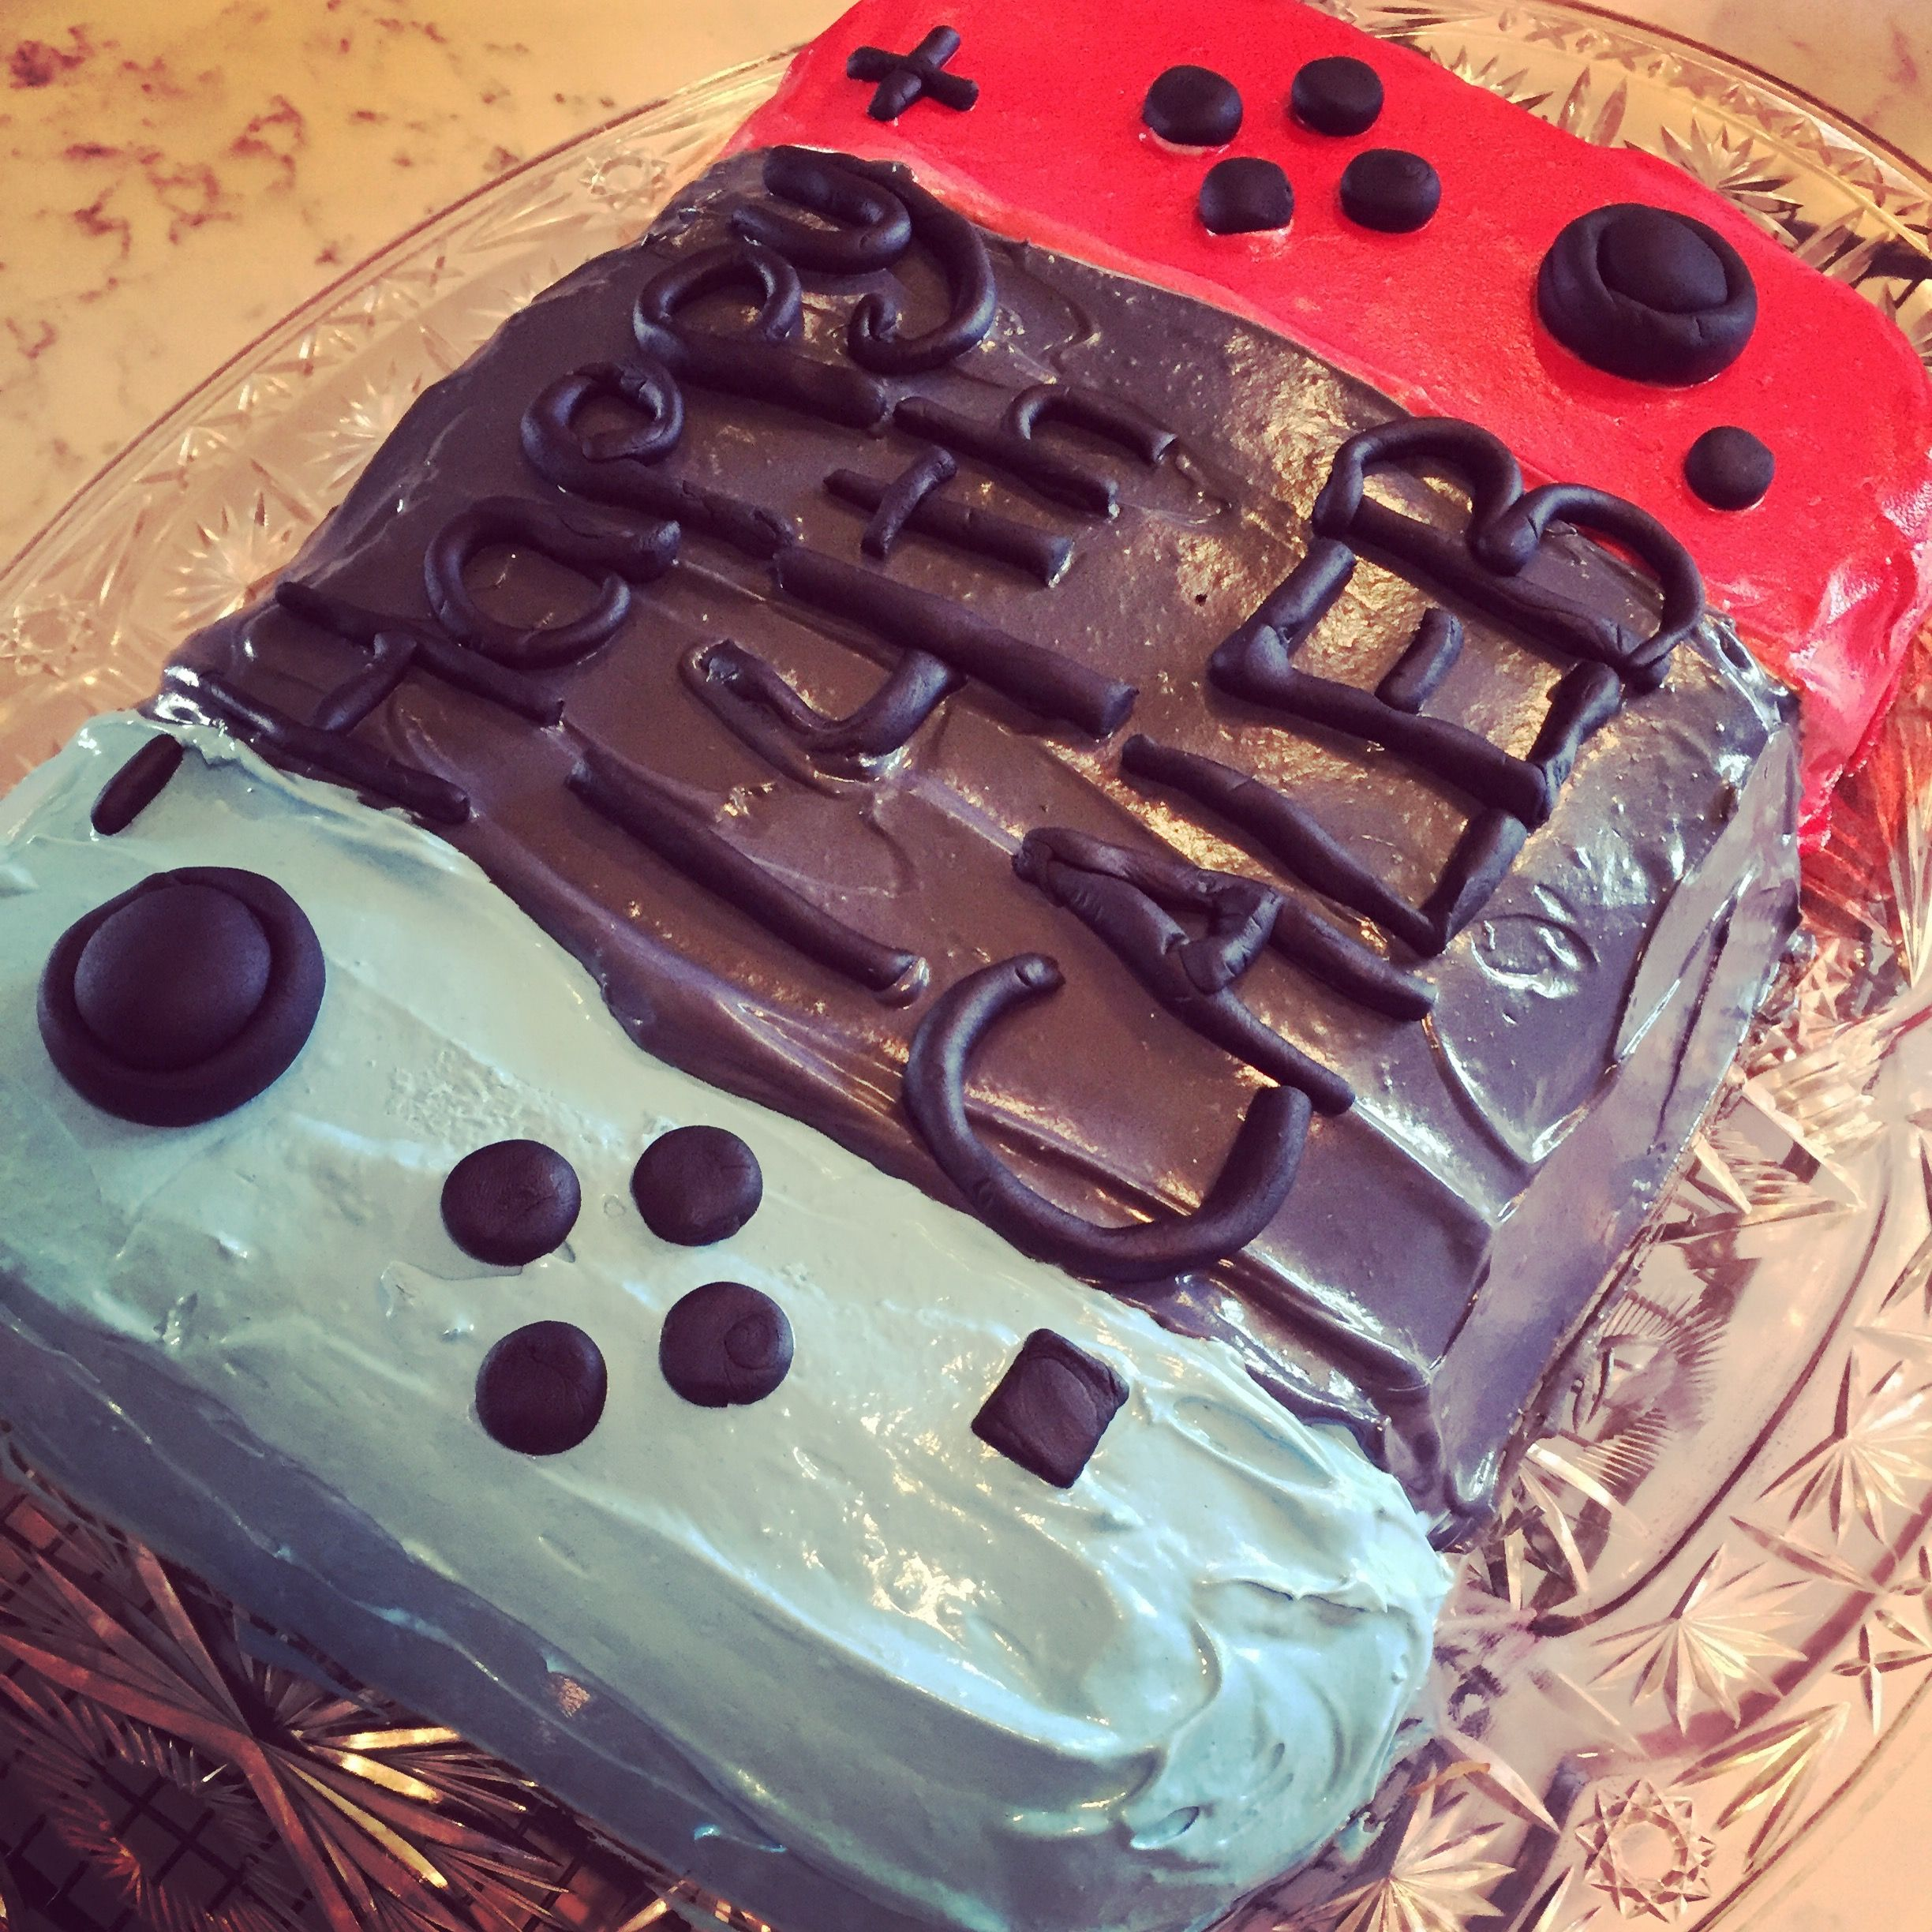 I made this Nintendo Switch Cake for my son's 14th